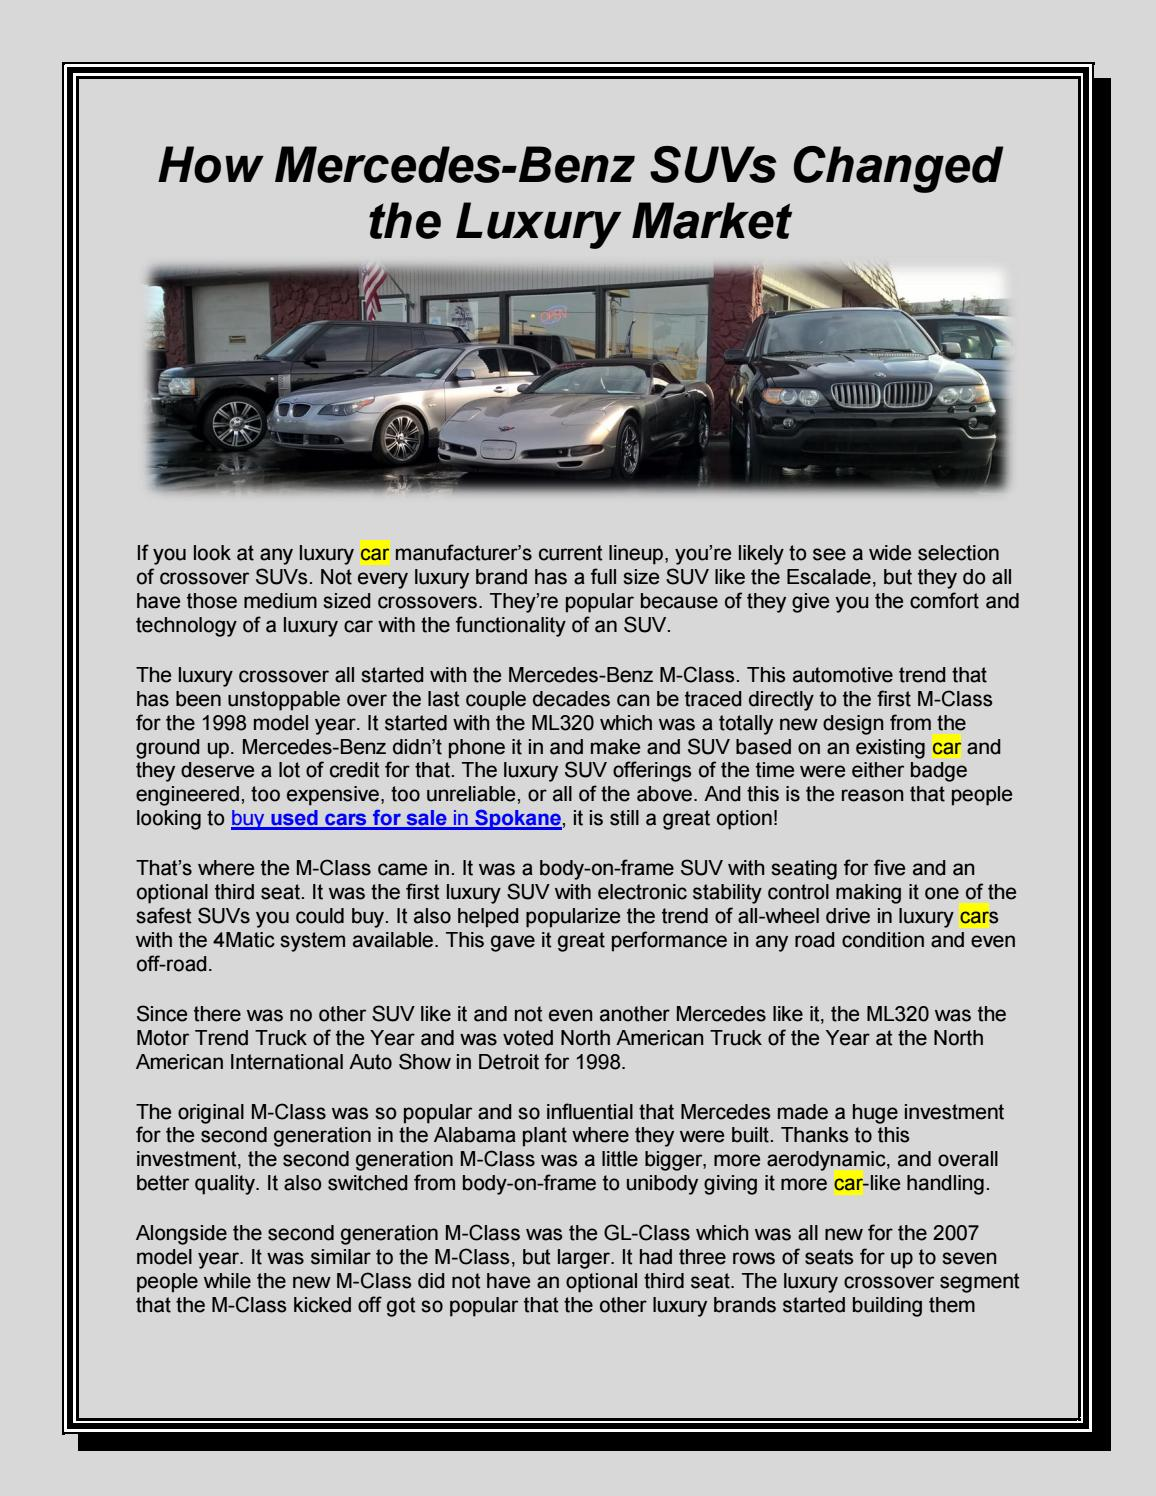 How Mercedes-Benz SUVs Changed the Luxury Market by Car Emporium - issuu